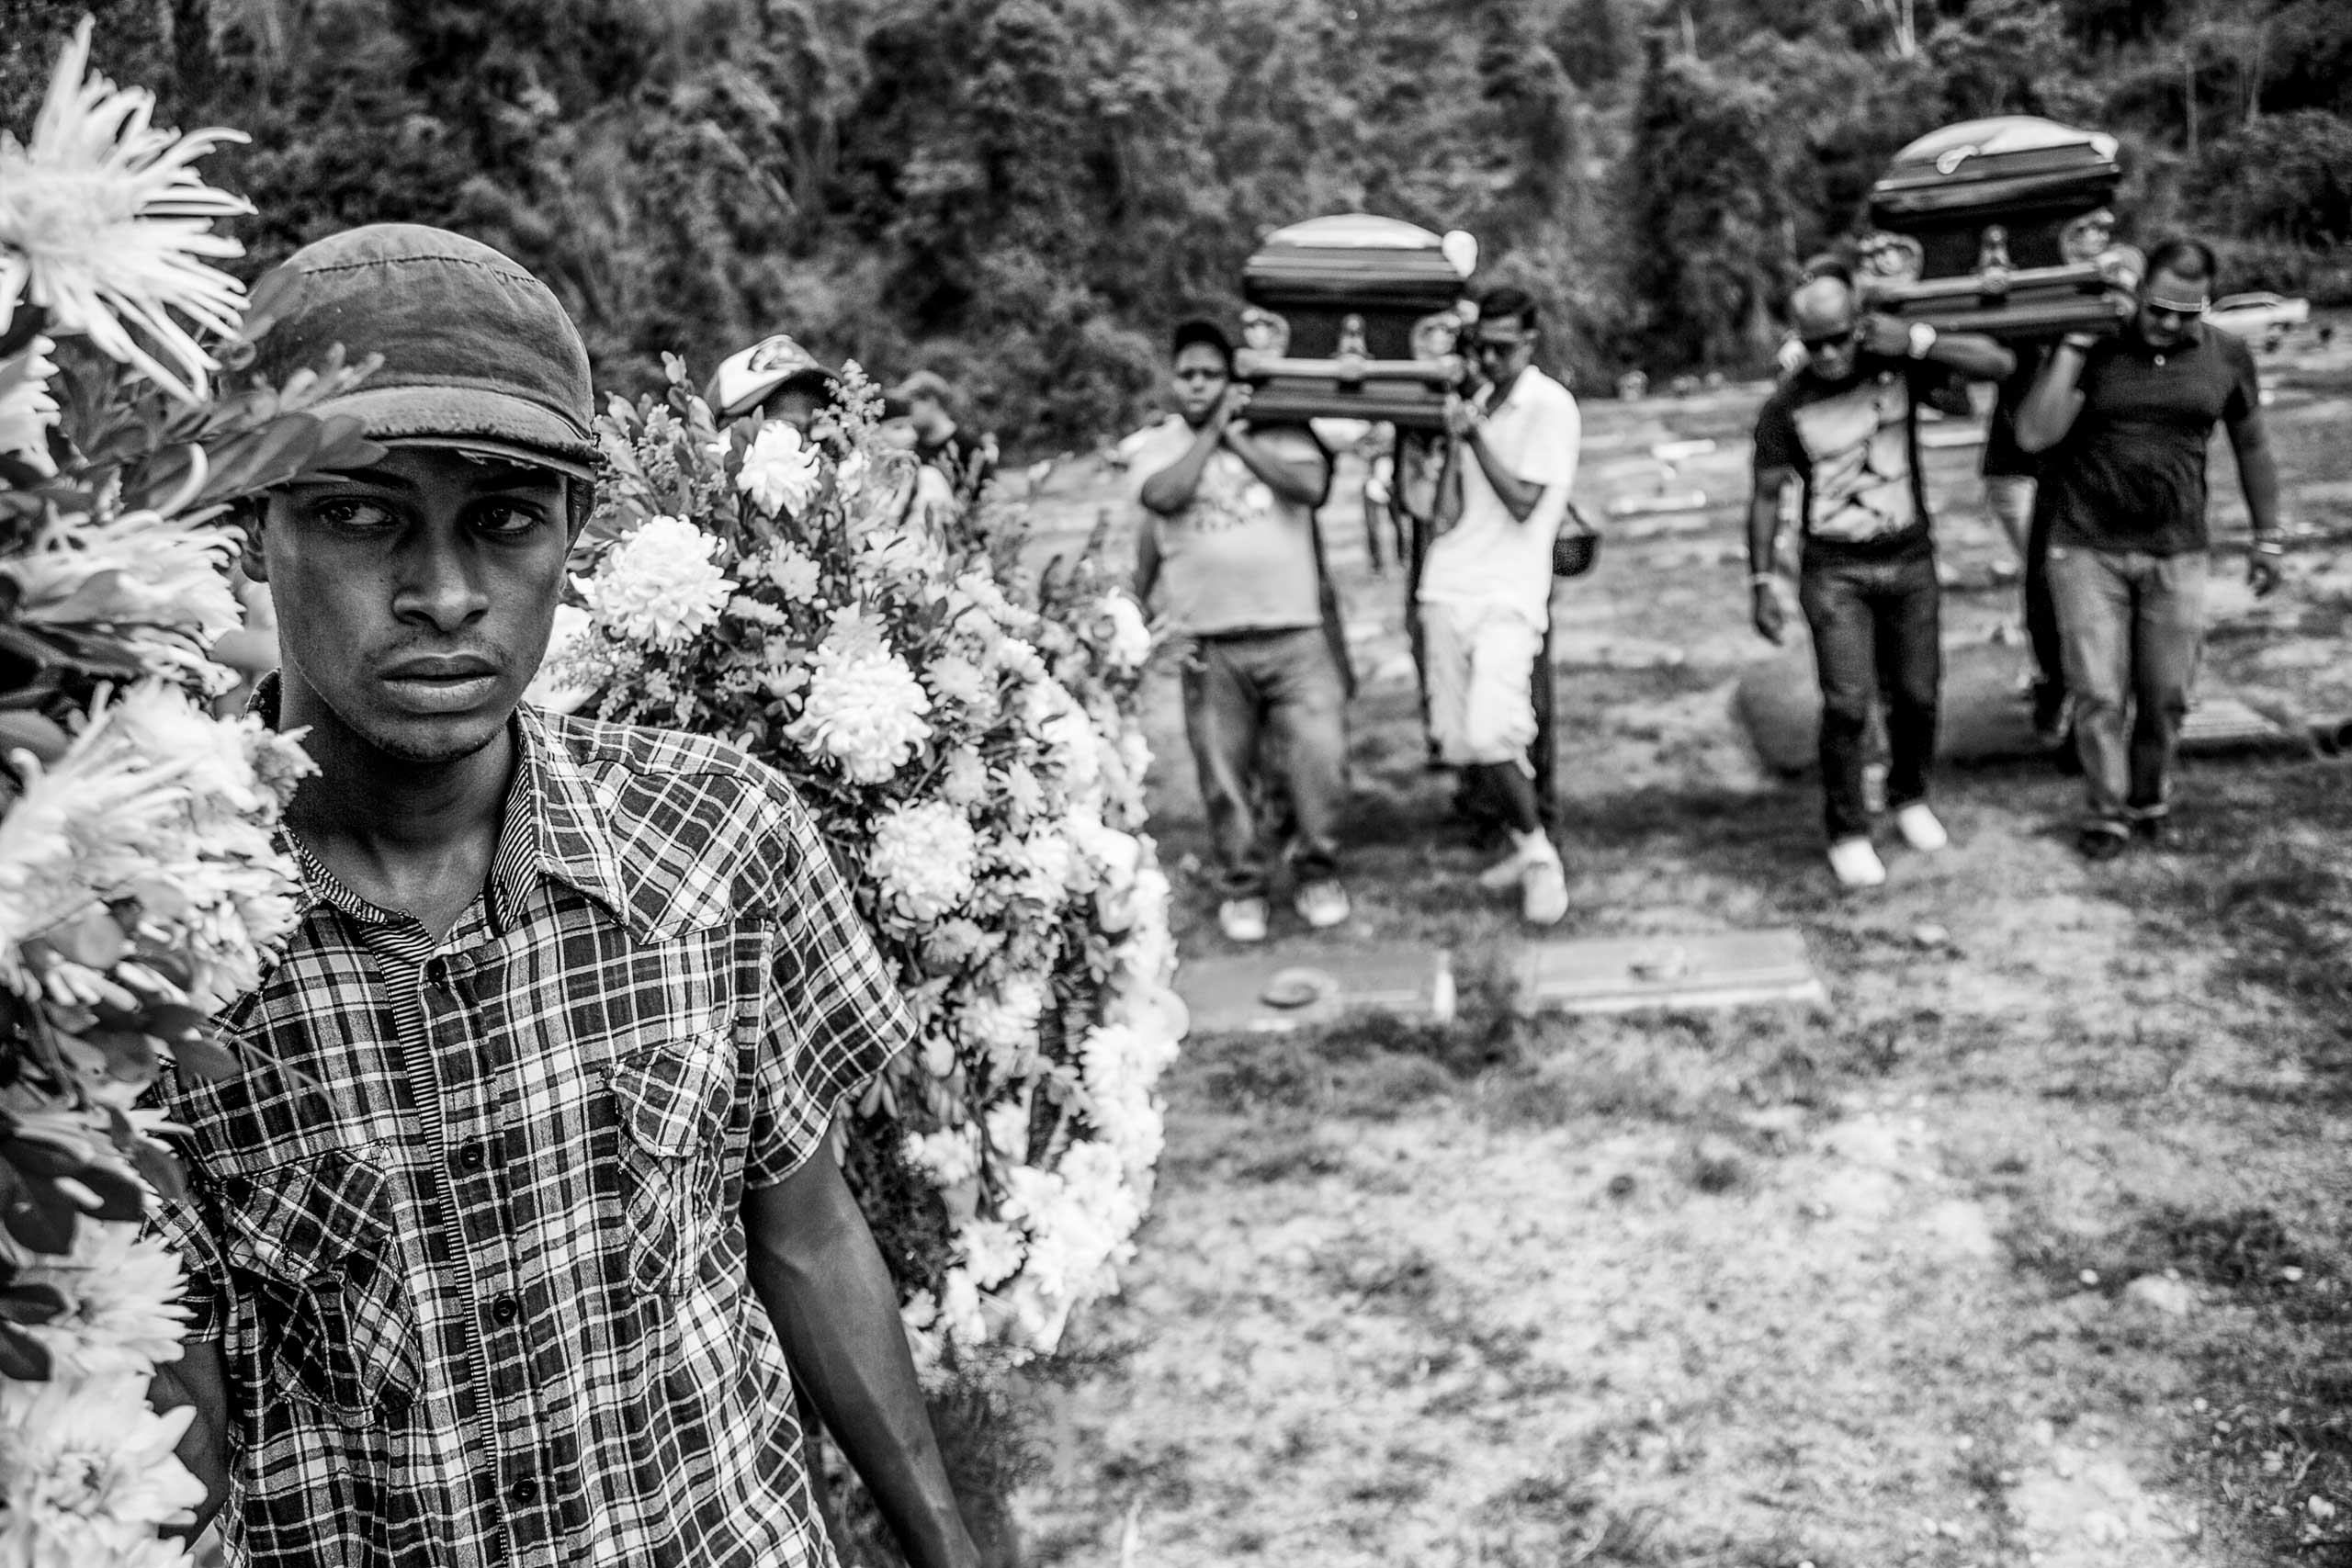 A relative of the Balza brothers carries an arrangement of flowers during their burial in the east cemetery of Caracas. The homicide in which the Balza brothers were killed—inside a hospital where had gone after one of them had been shot during a gang fight—adds to the statistics of 24,000 murders per year. July 2014.